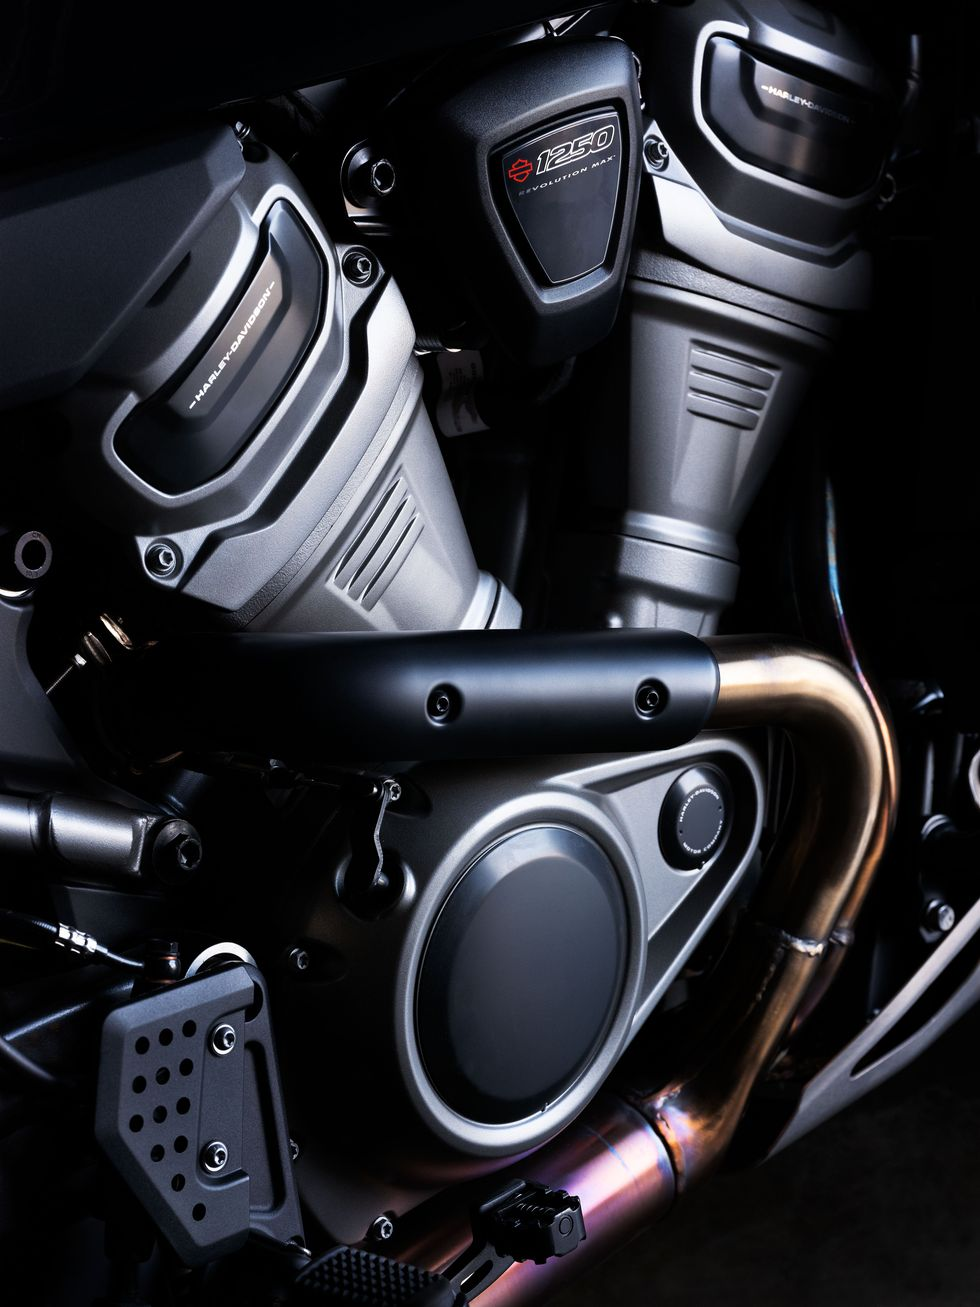 Harley's Latest Bike Was Built to Tackle Unpaved America